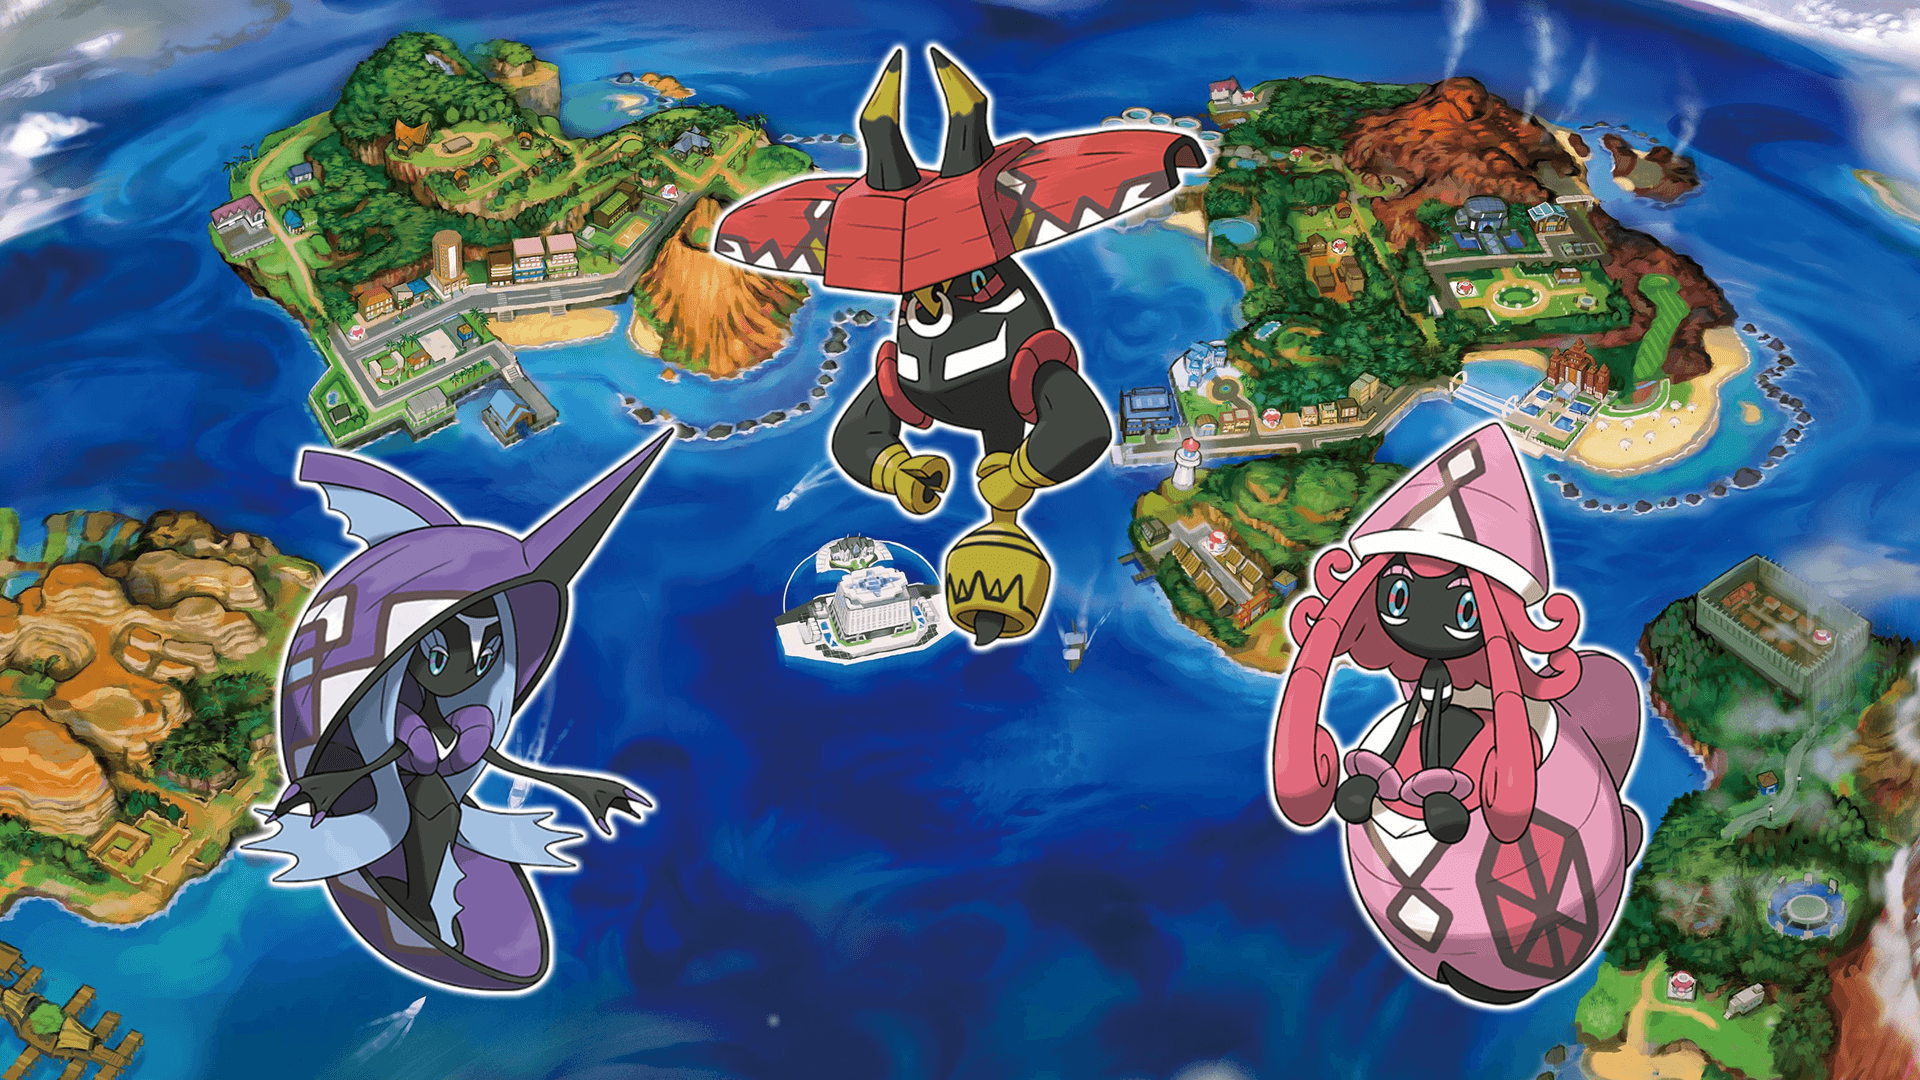 New island guardians revealed for Pokémon Sun & Moon | Nintendo Wire